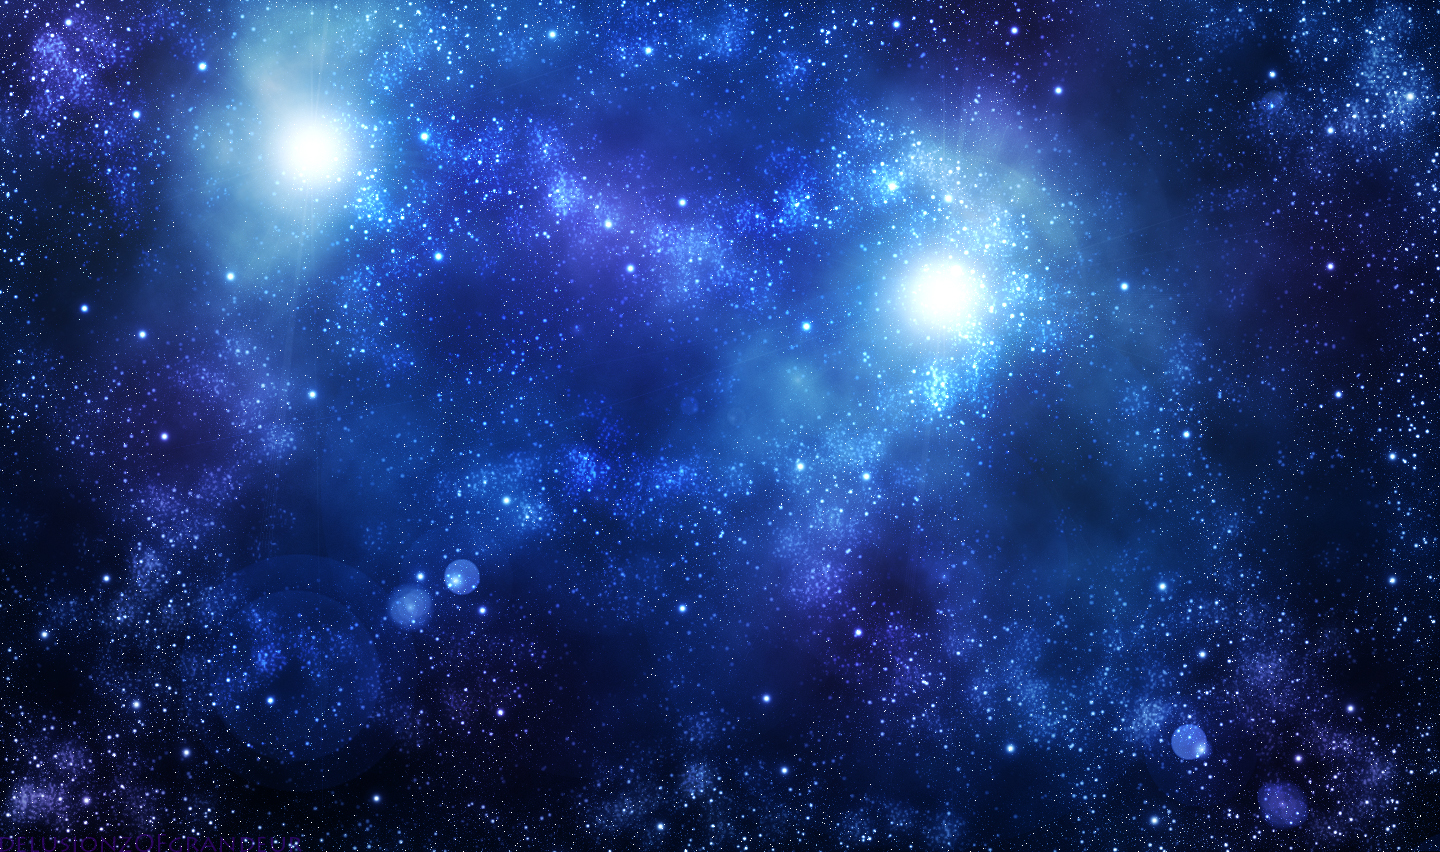 Blue Galaxy Wallpaper Wallpapersafari